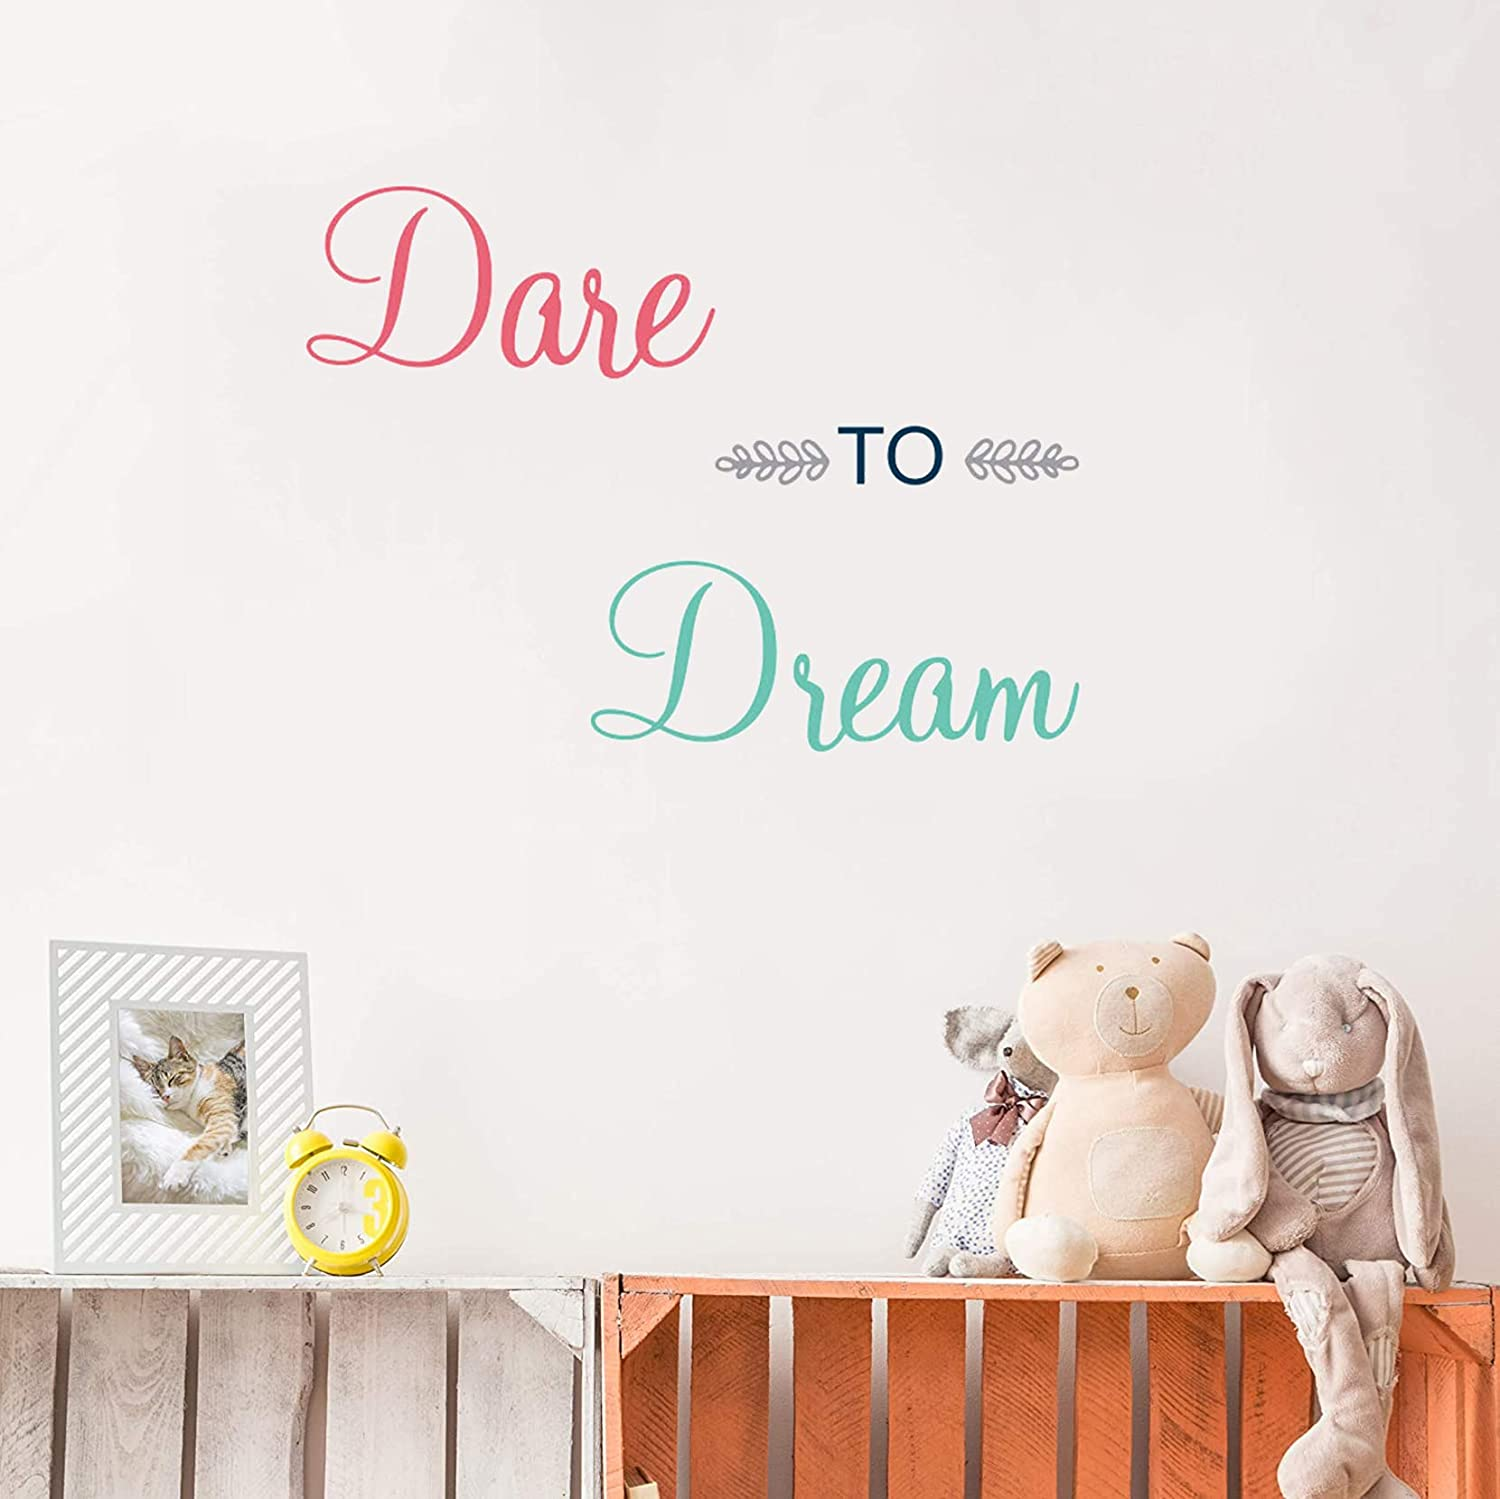 Dare to Dream, Inspirational Quote Wall Stickers, Peel and Stick Wall Decals, Vinyl DIY Decorations Wall Decor for Classroom Bedroom Playroom Nursery Kids Room Decor